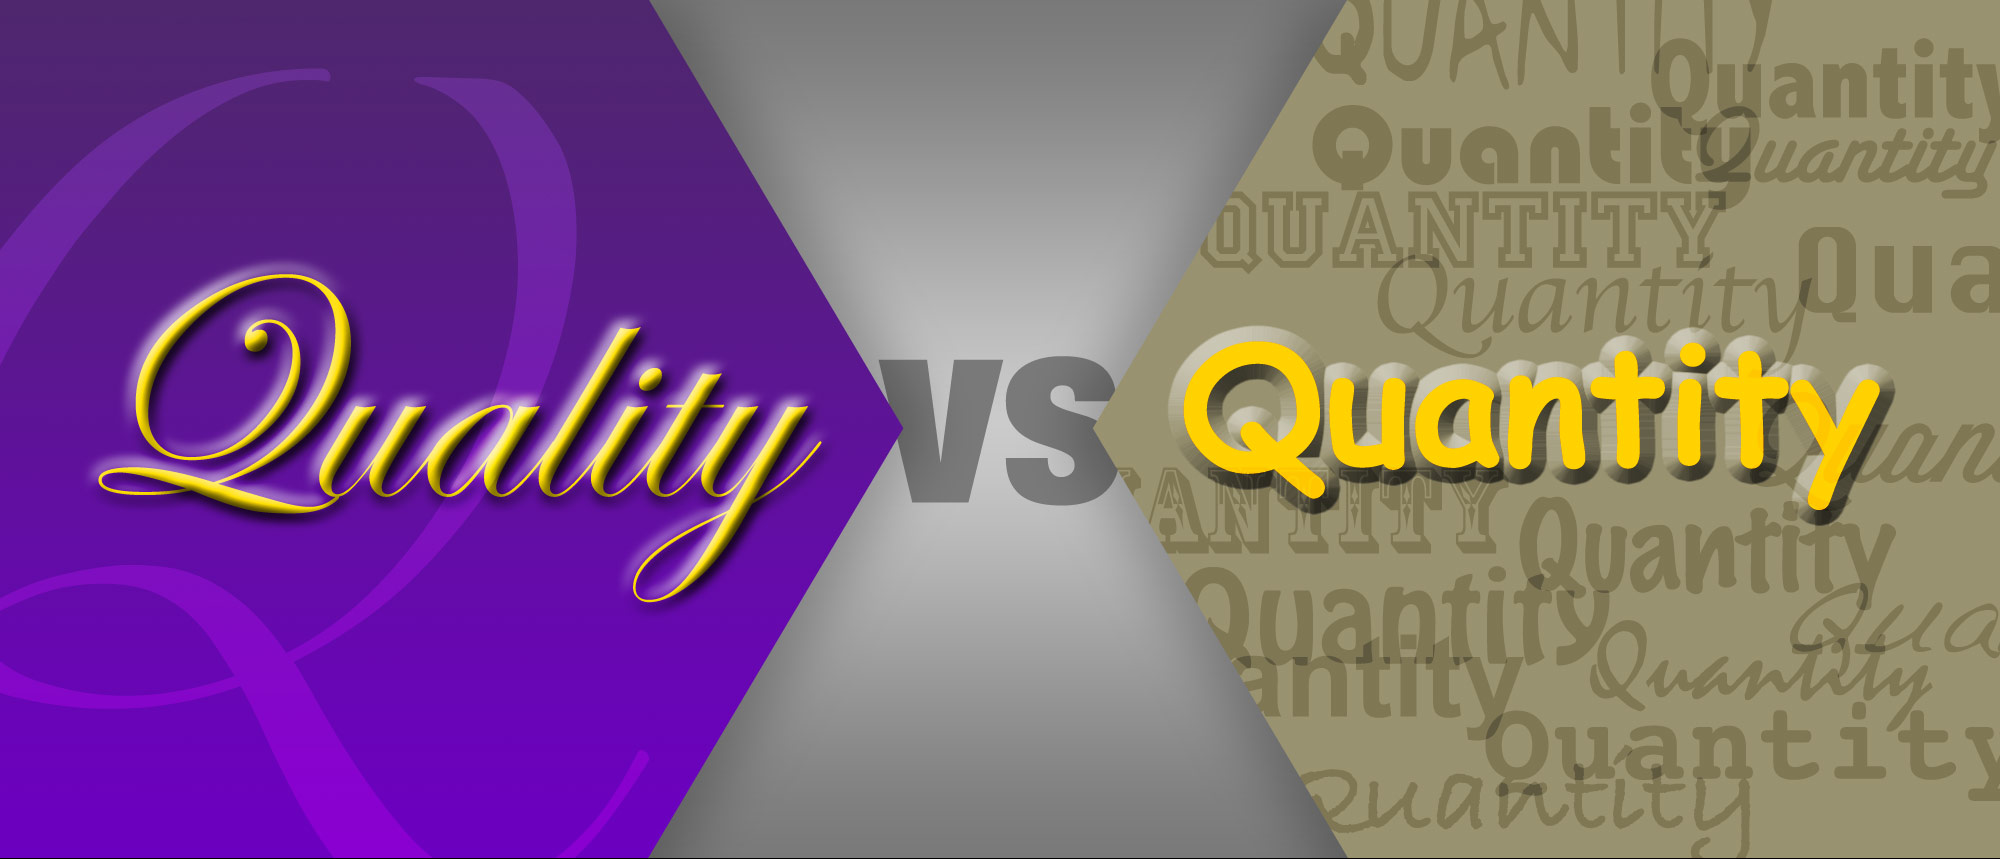 quantity vs quality essay Evaluating research quality guidelines for scholarship 22 february 2012  bias, provides guidelines for evaluating research and data quality, and describes.